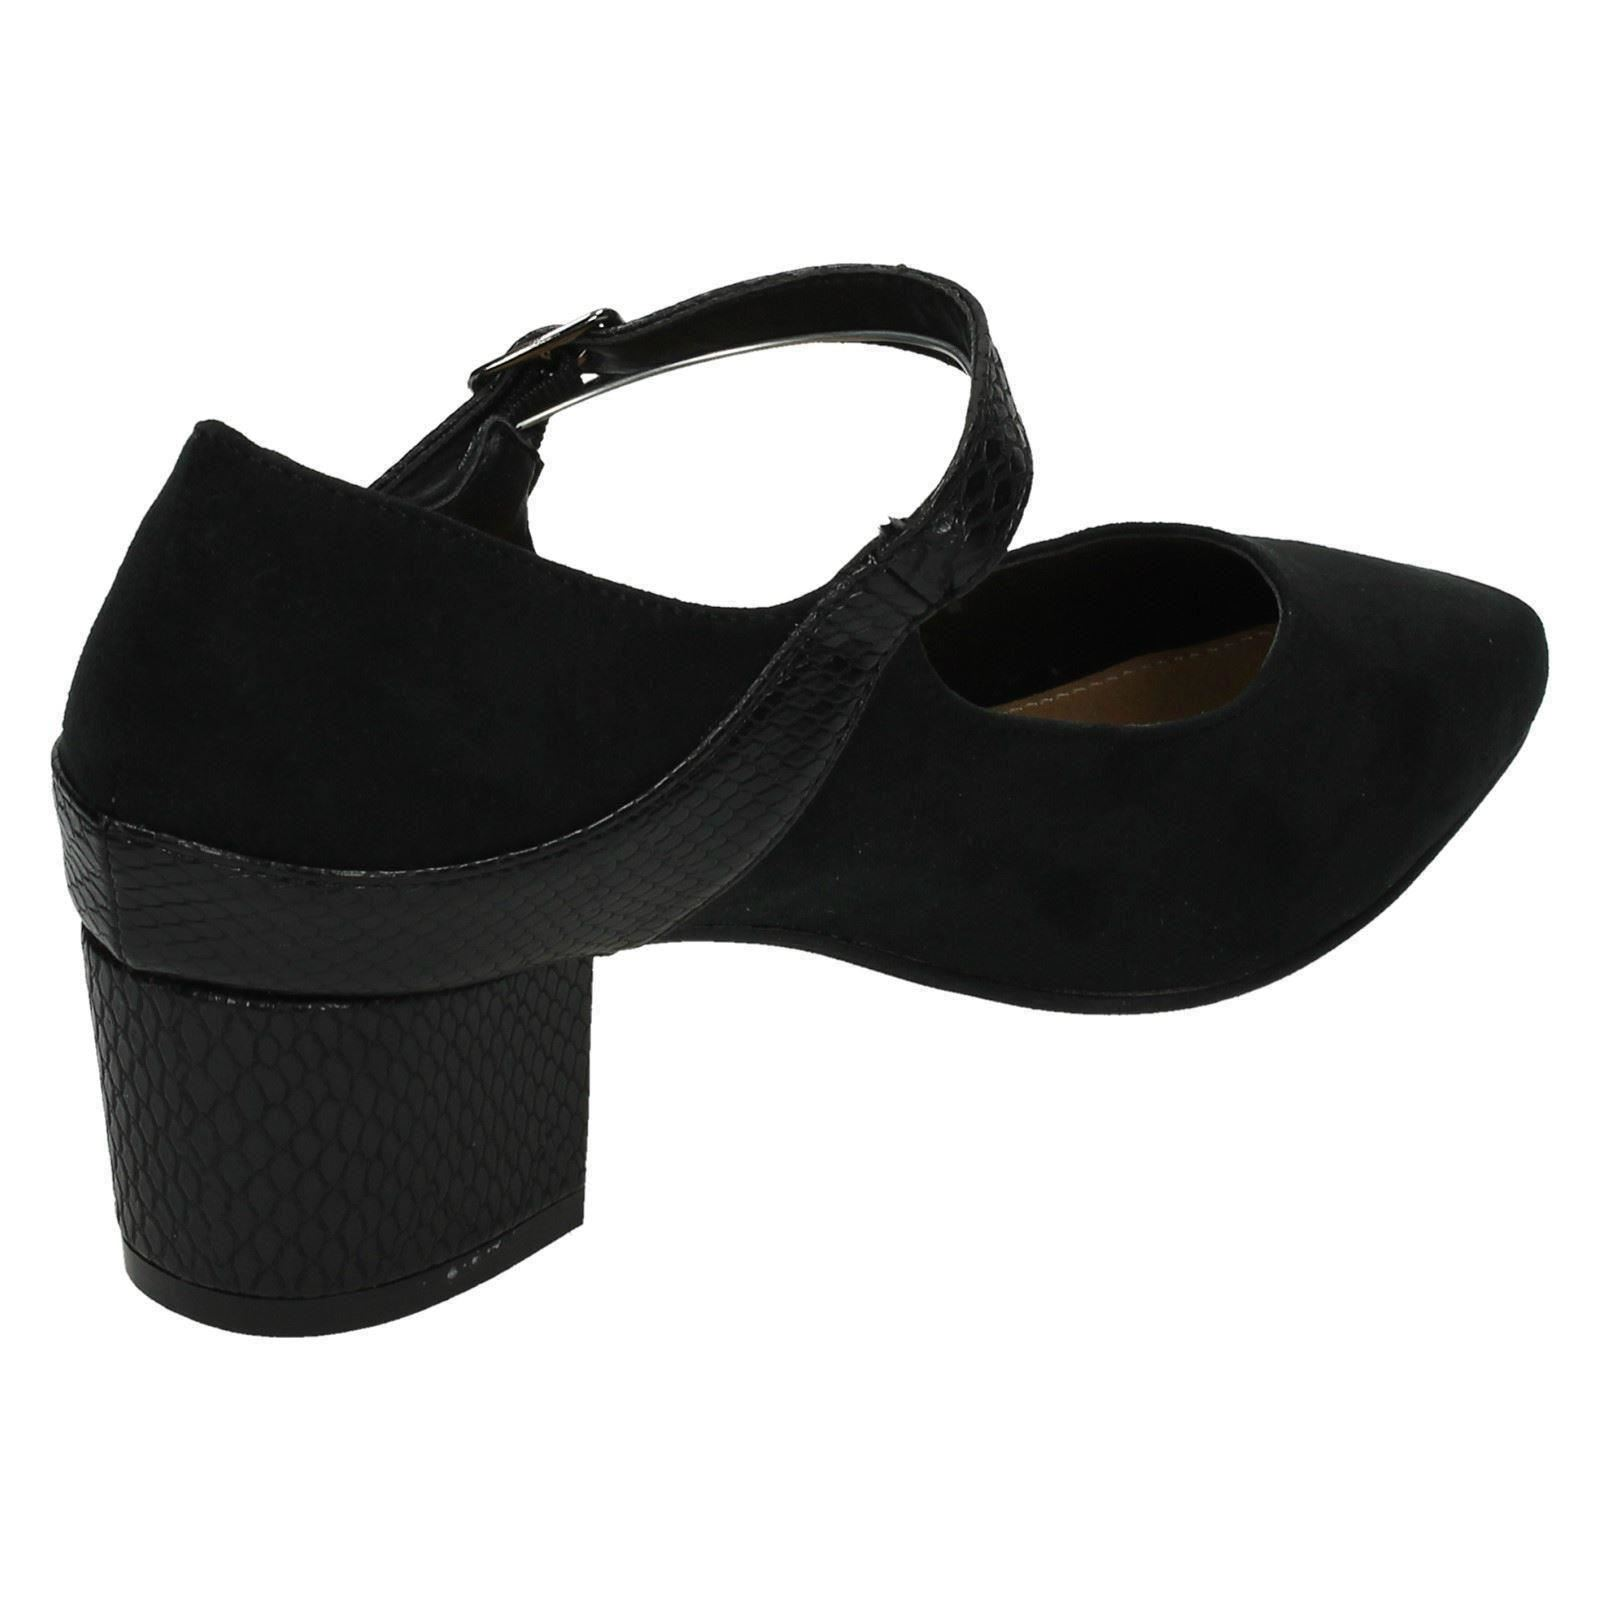 Ladies-Anne-Michelle-Wide-Fitting-Mid-Chunky-Heel-Mary-Jane-Shoes thumbnail 6